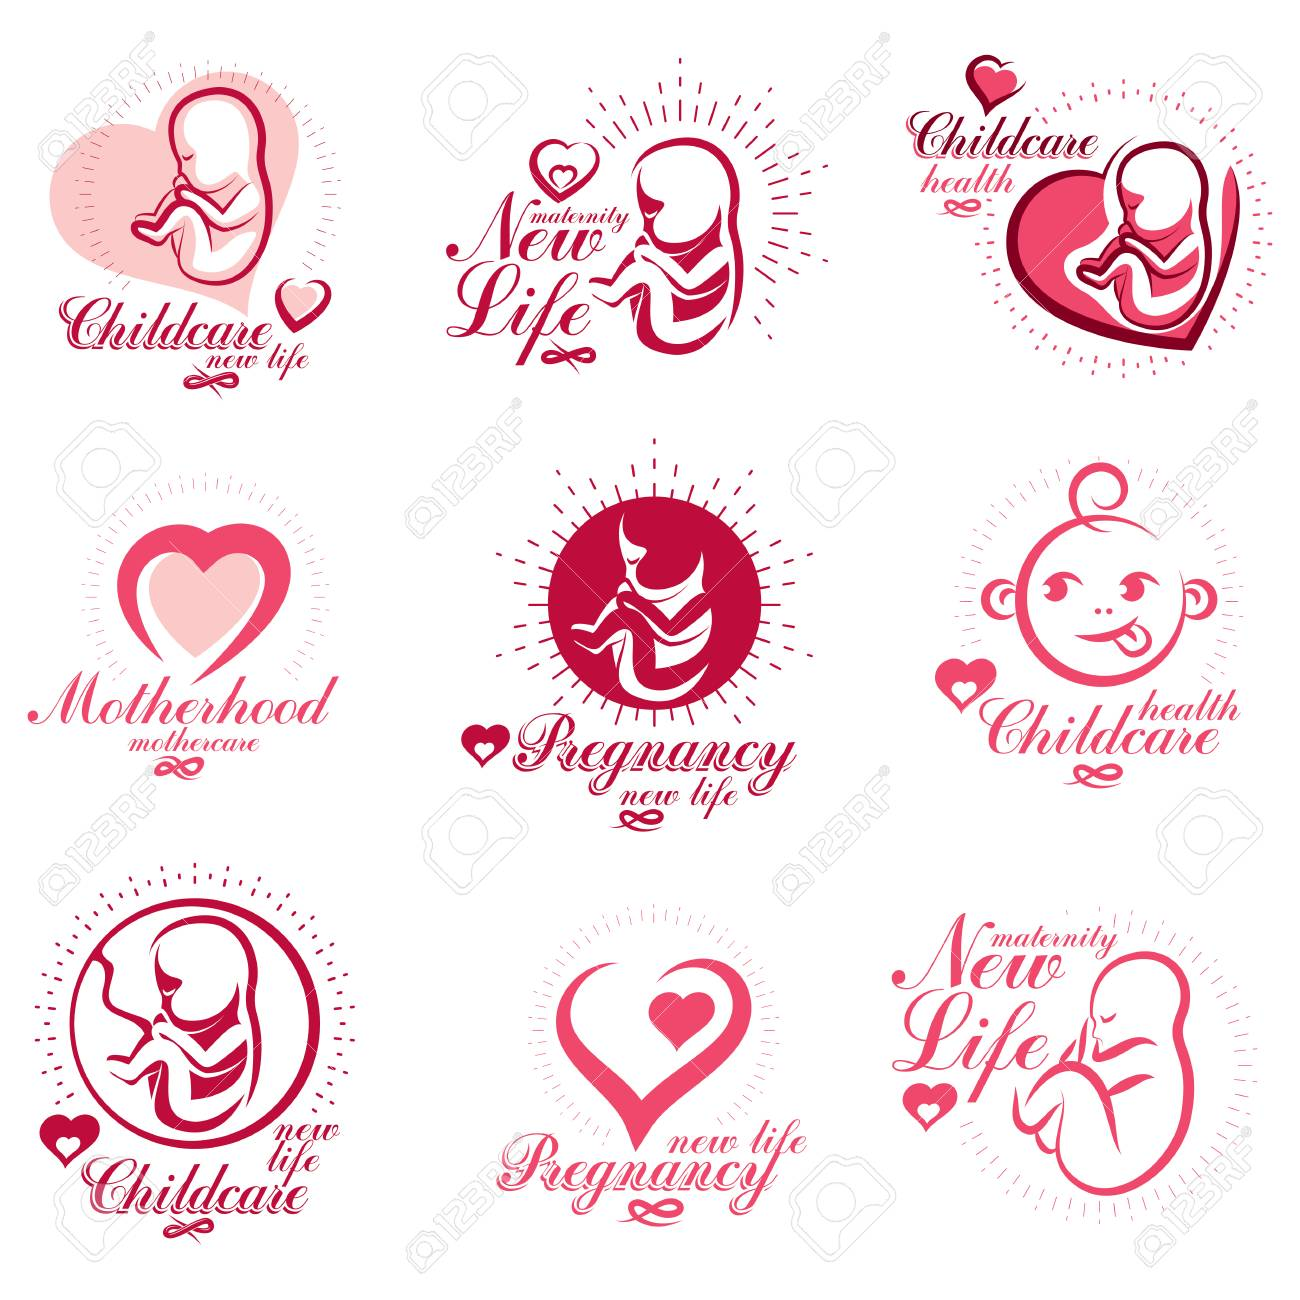 Vector embryo and newborn emblems set isolated on white. New life beginning drawings. Maternity ward abstract emblems - 103233232